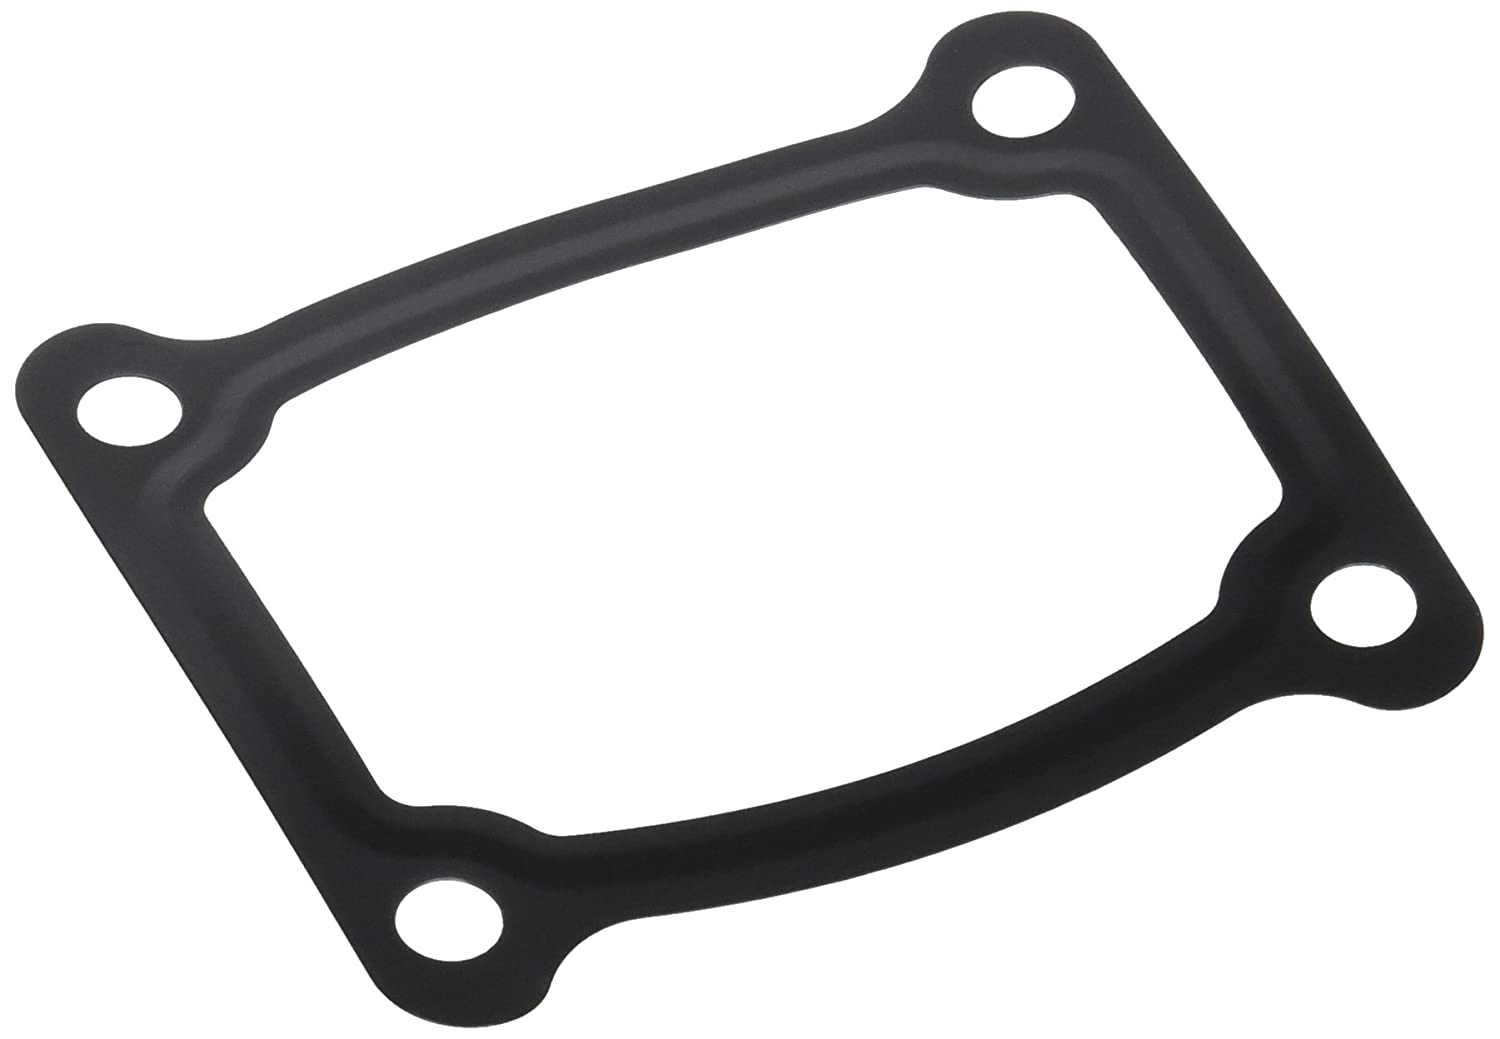 Toyota 11328-0P010 Timing Gear Chain Cover Gasket